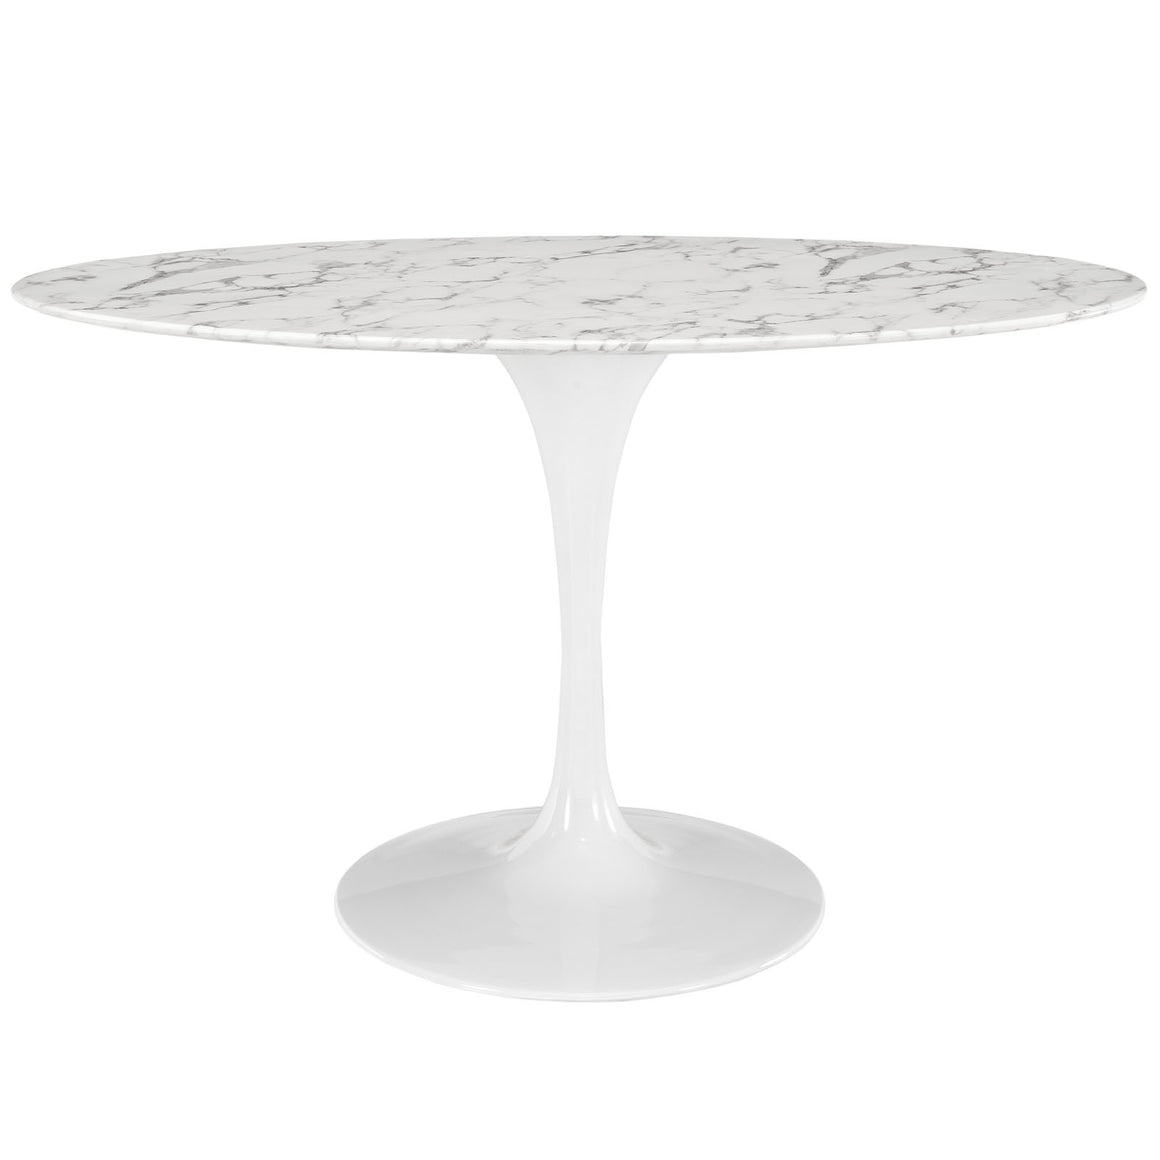 "Lippa 54"" Oval-Shaped Artificial Marble Dining Table - taylor ray decor"